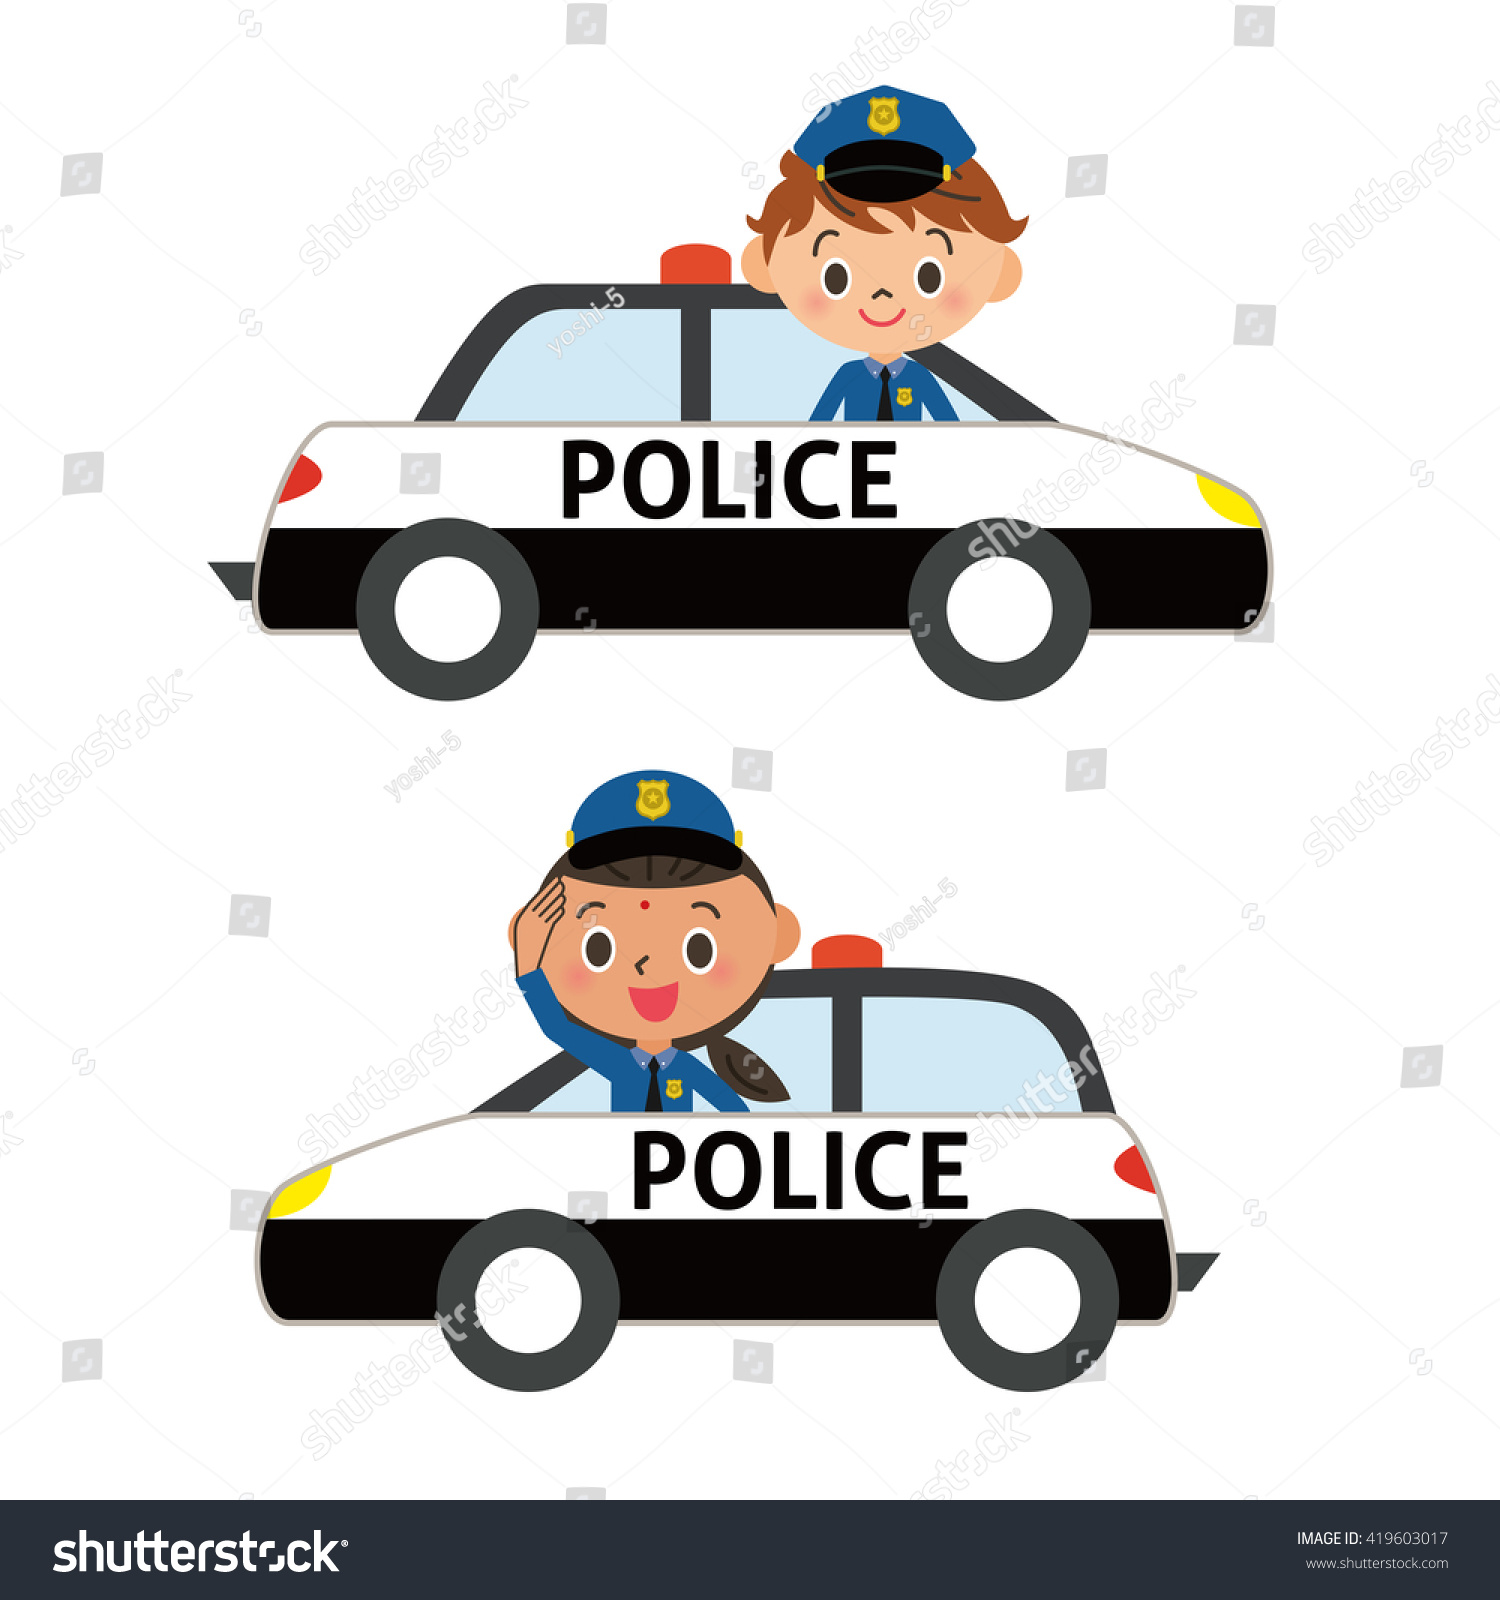 Police Officer Car Clipart | www.pixshark.com - Images ...